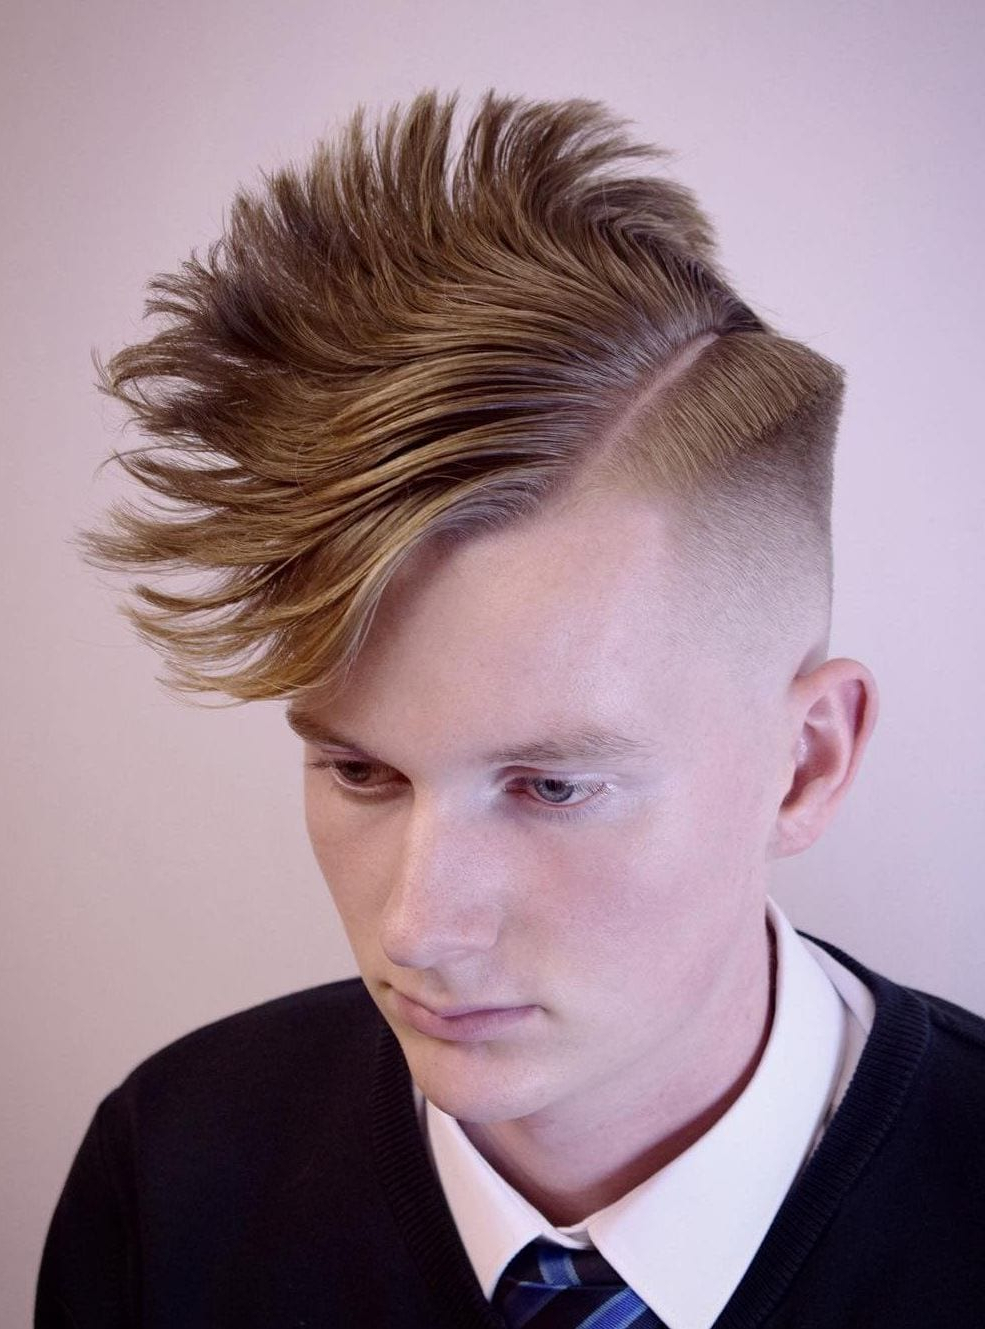 20 Edgy Men's Haircuts You Need To Know For Modern And Edgy Hairstyles (View 13 of 20)